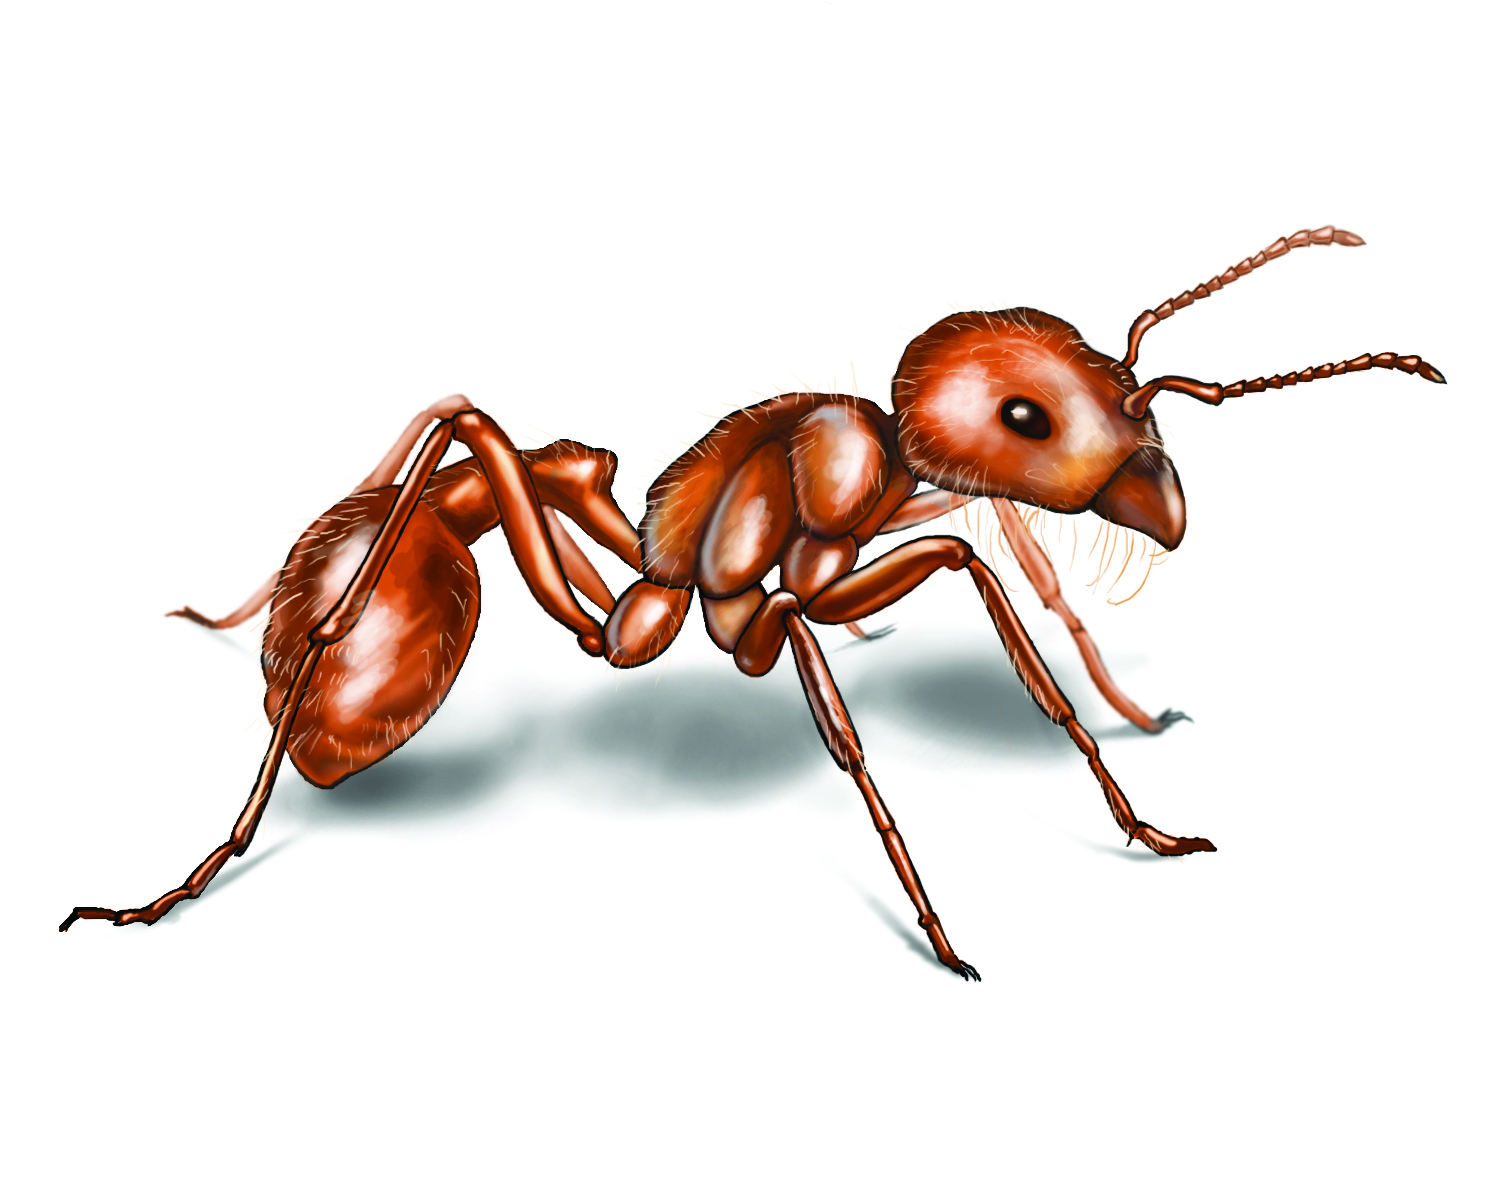 Harvester Ant Behavior: Characteristics of Harvester Ants